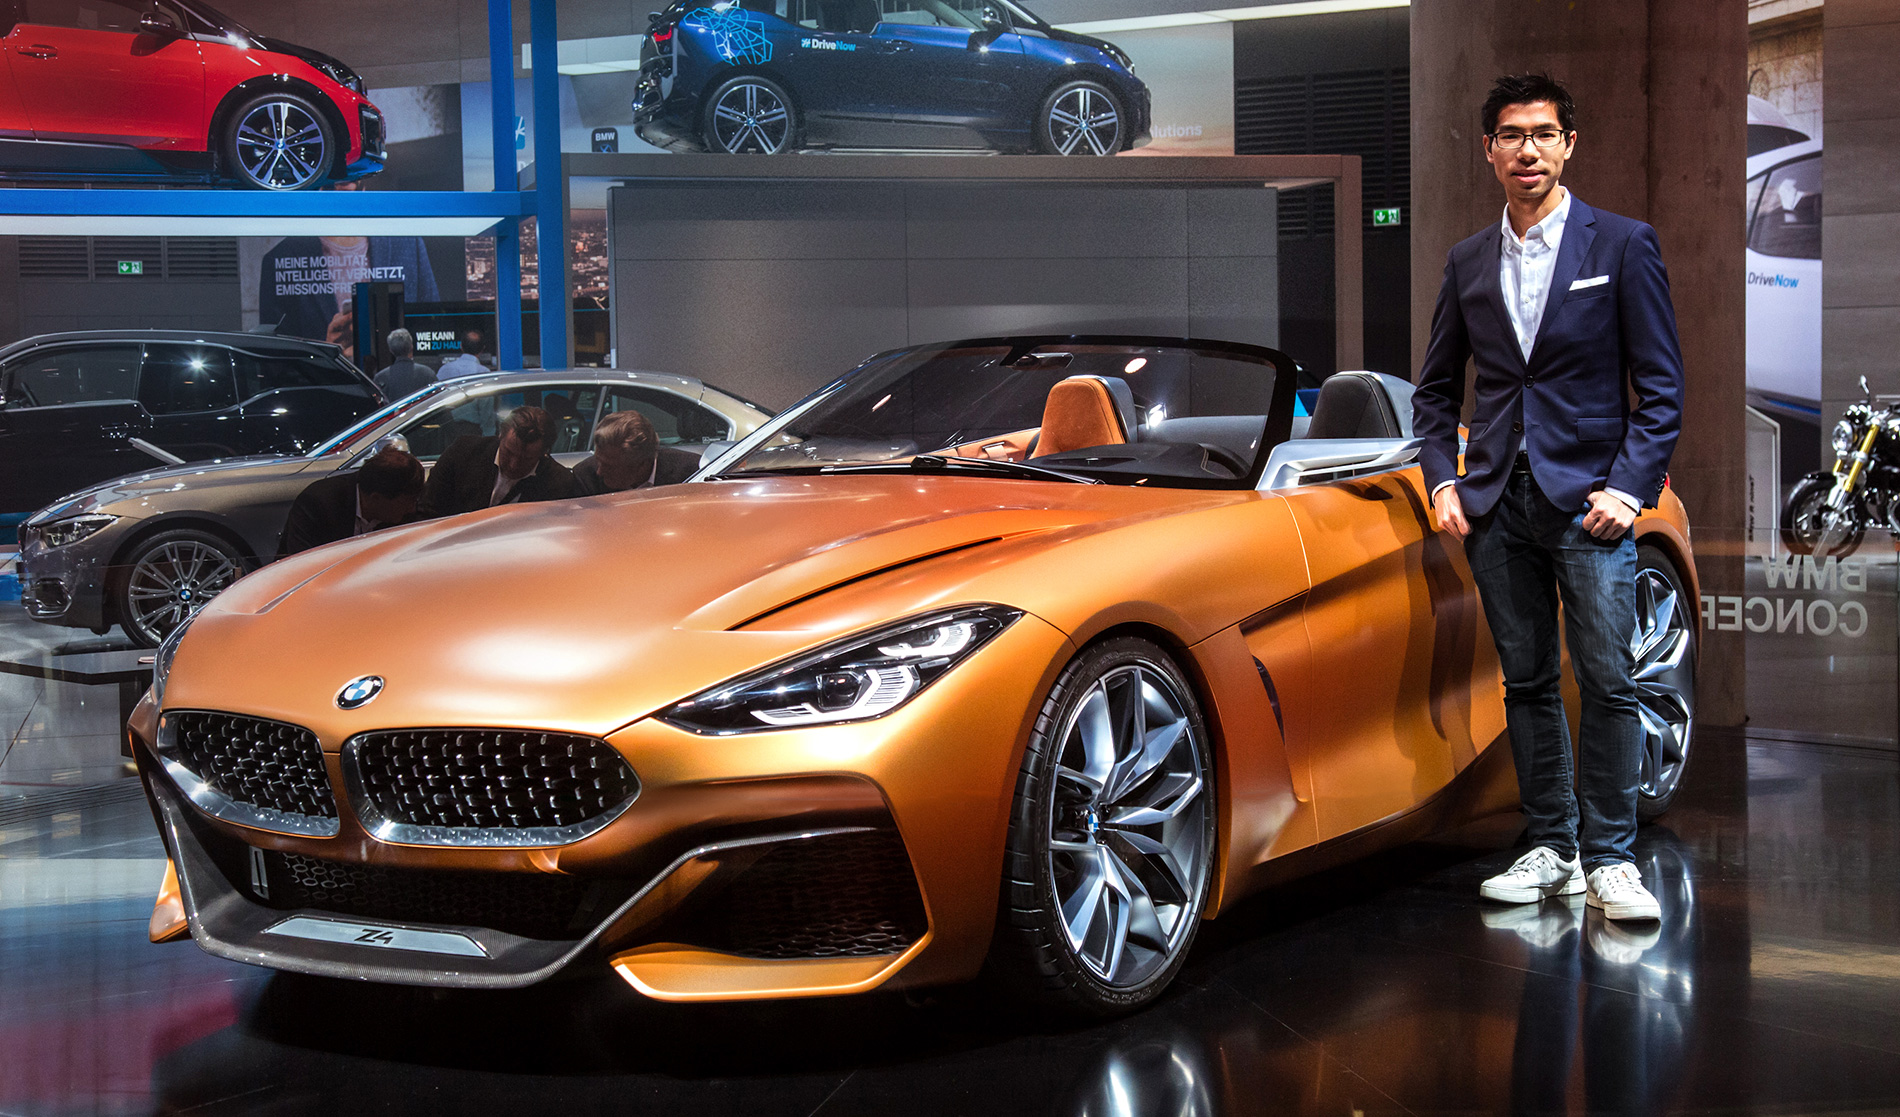 Exclusive Interview With Bmw X3 And Concept Z4 Designer Calvin Luk